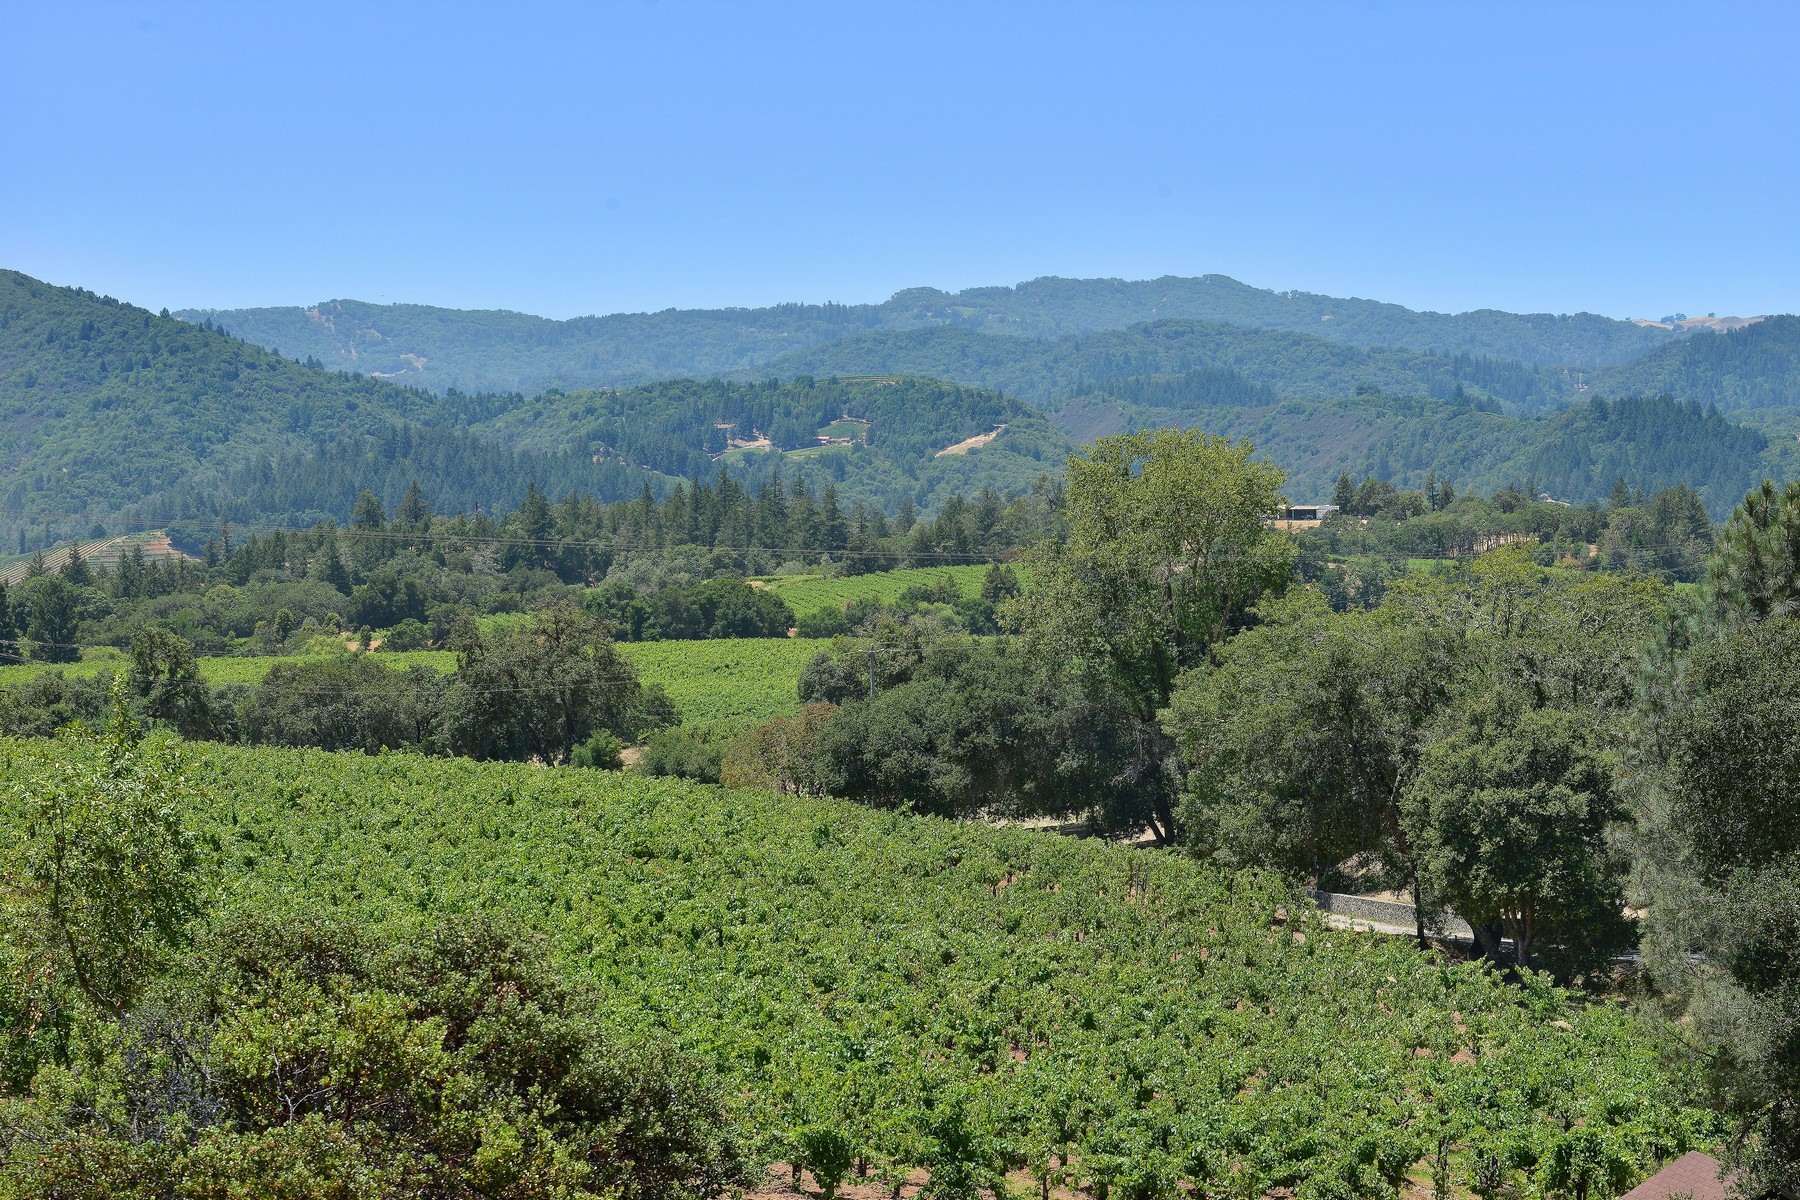 Farm / Ranch / Plantation for Sale at Carreras Family Caboose Vineyard 22700 Walling Rd Geyserville, California 95441 United States